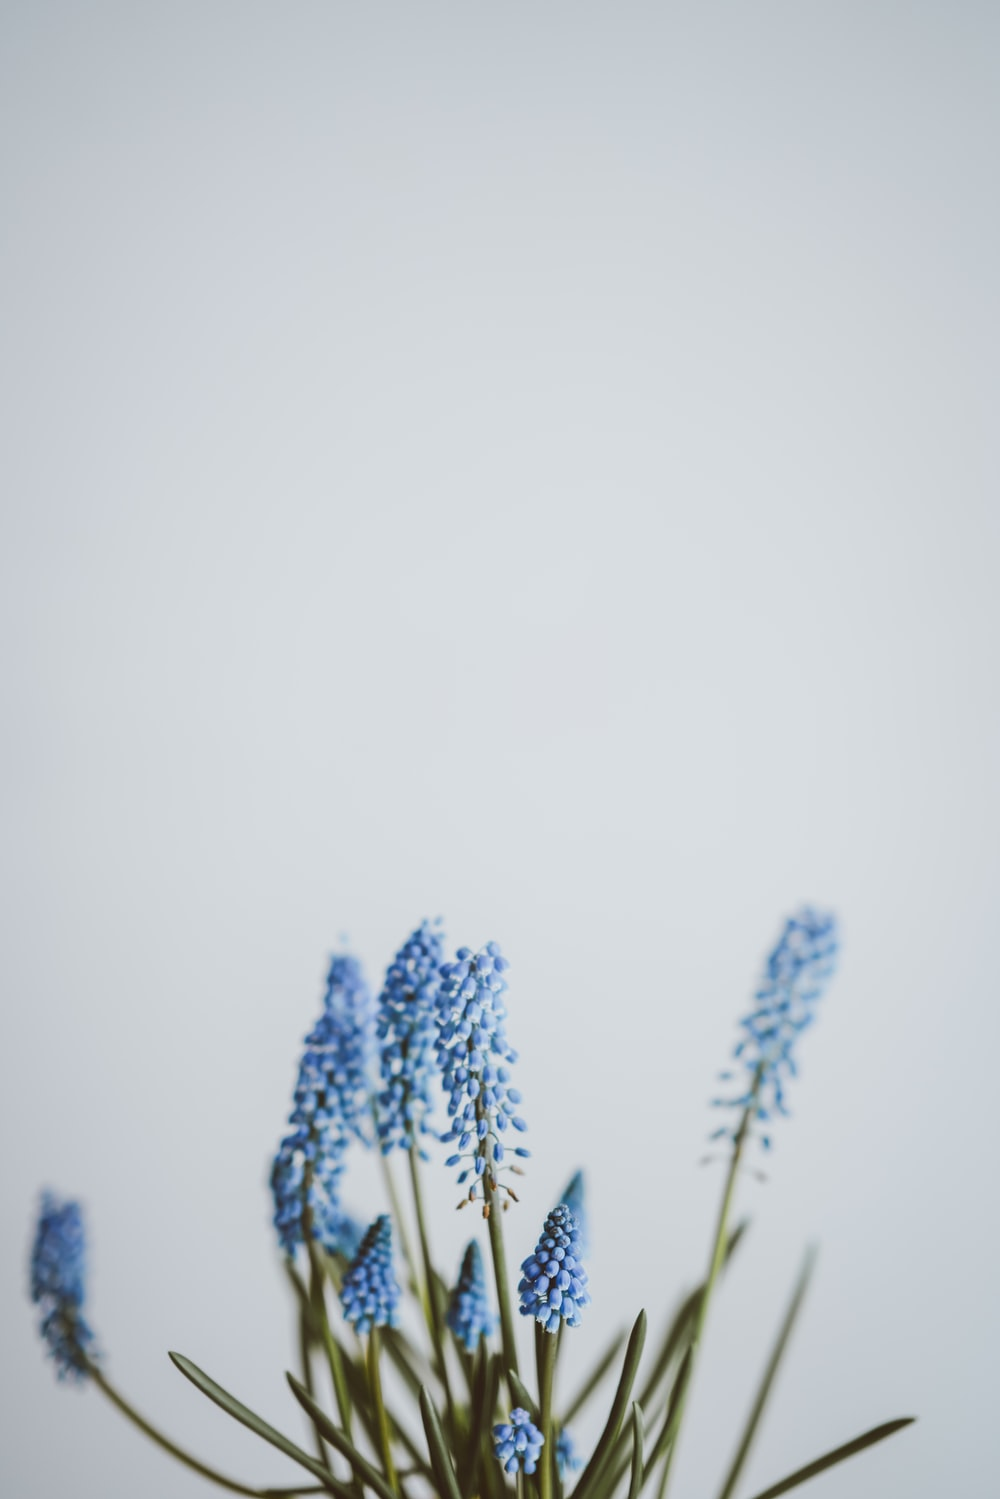 selective focus photography of blue petaled flower in bloom